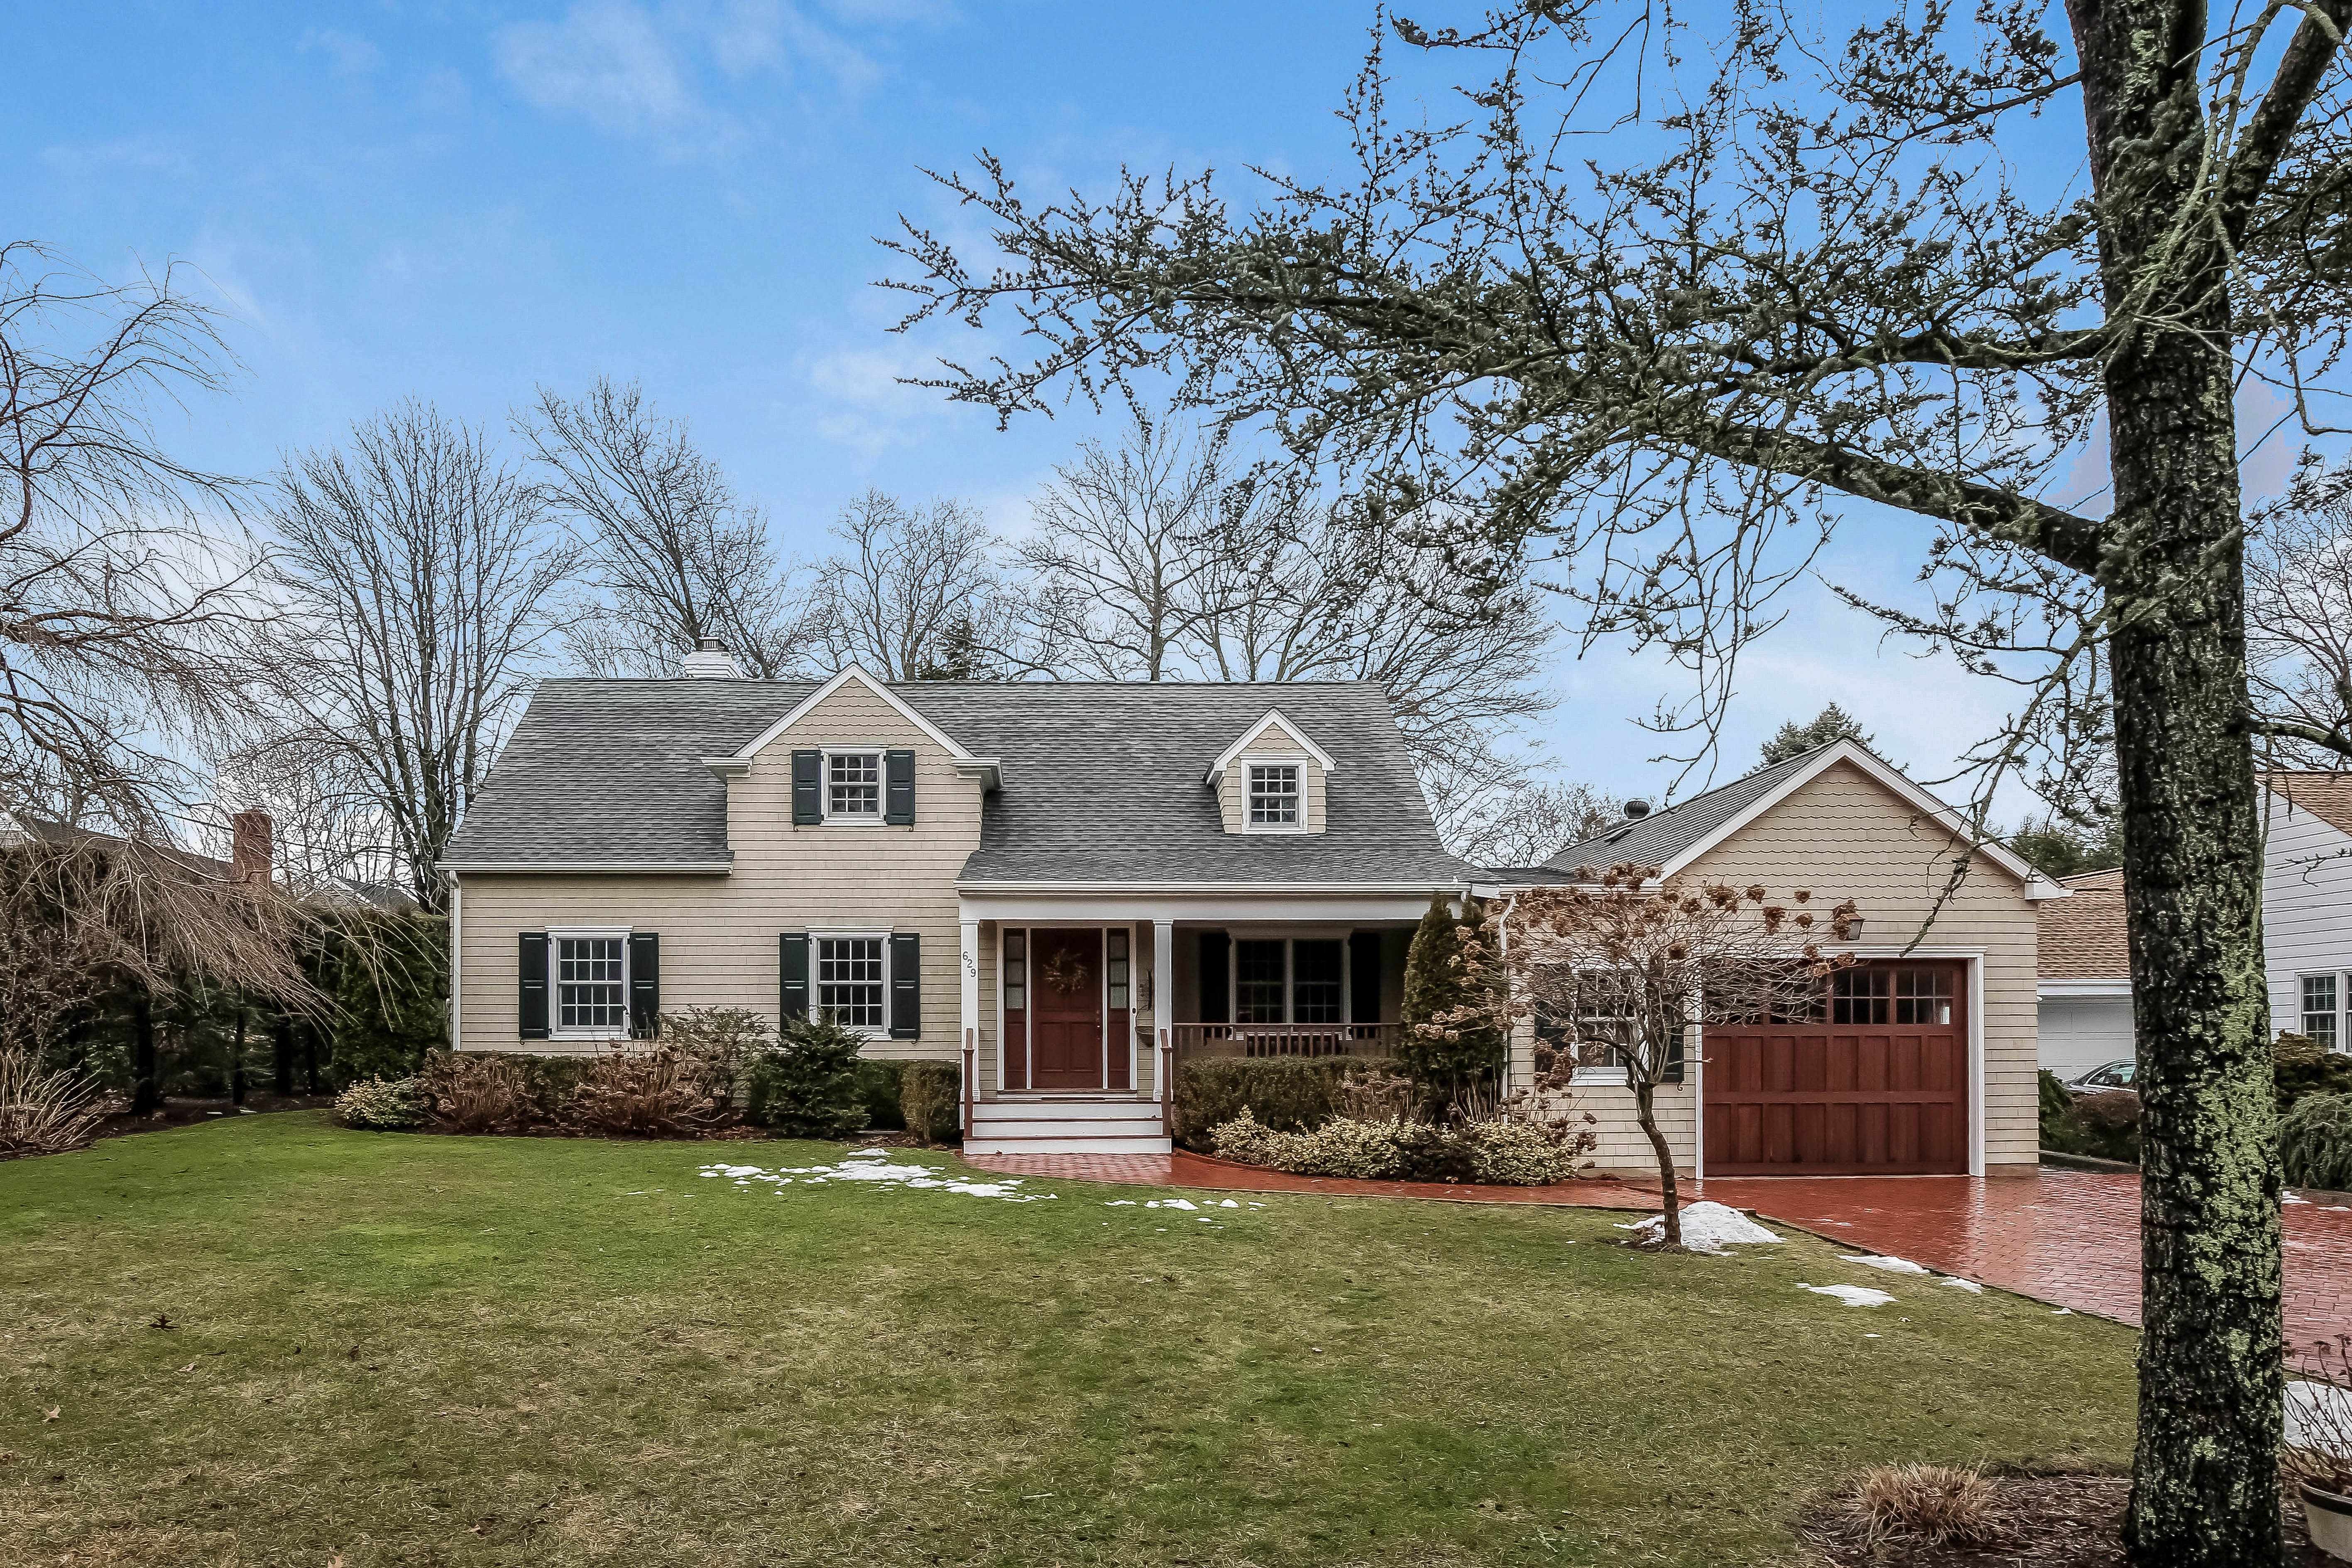 Single Family Home for Sale at Orienta Gem in Mamaroneck 629 Forest Avenue Mamaroneck, New York, 10543 United States